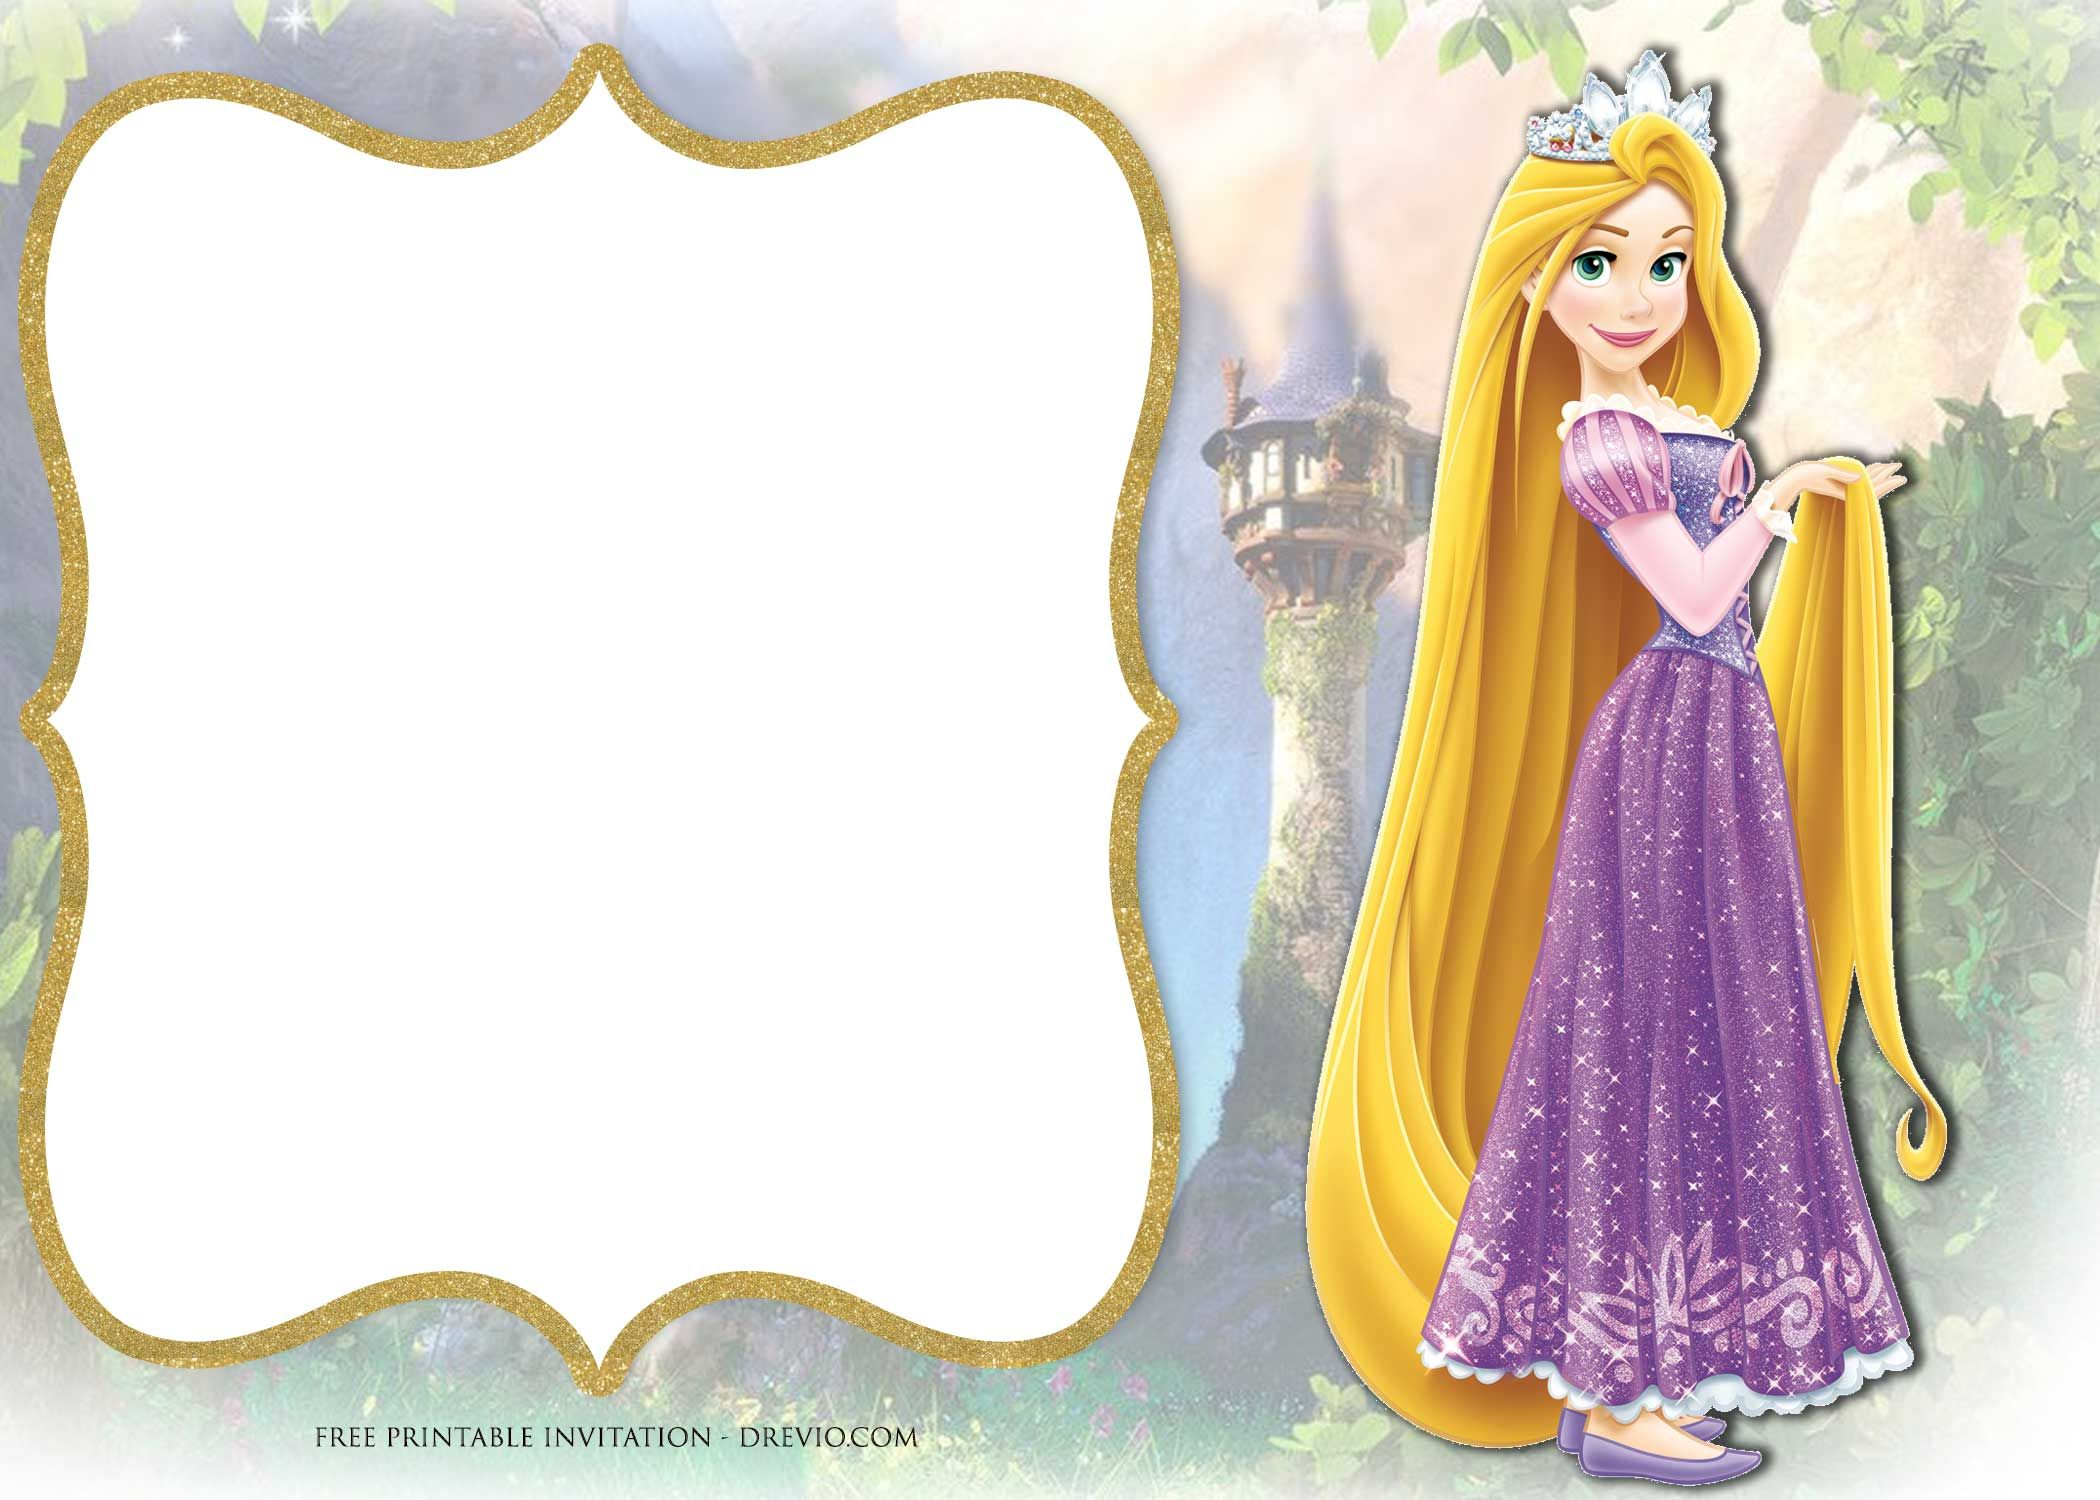 Free Printable Princess Rapunzel Invitation